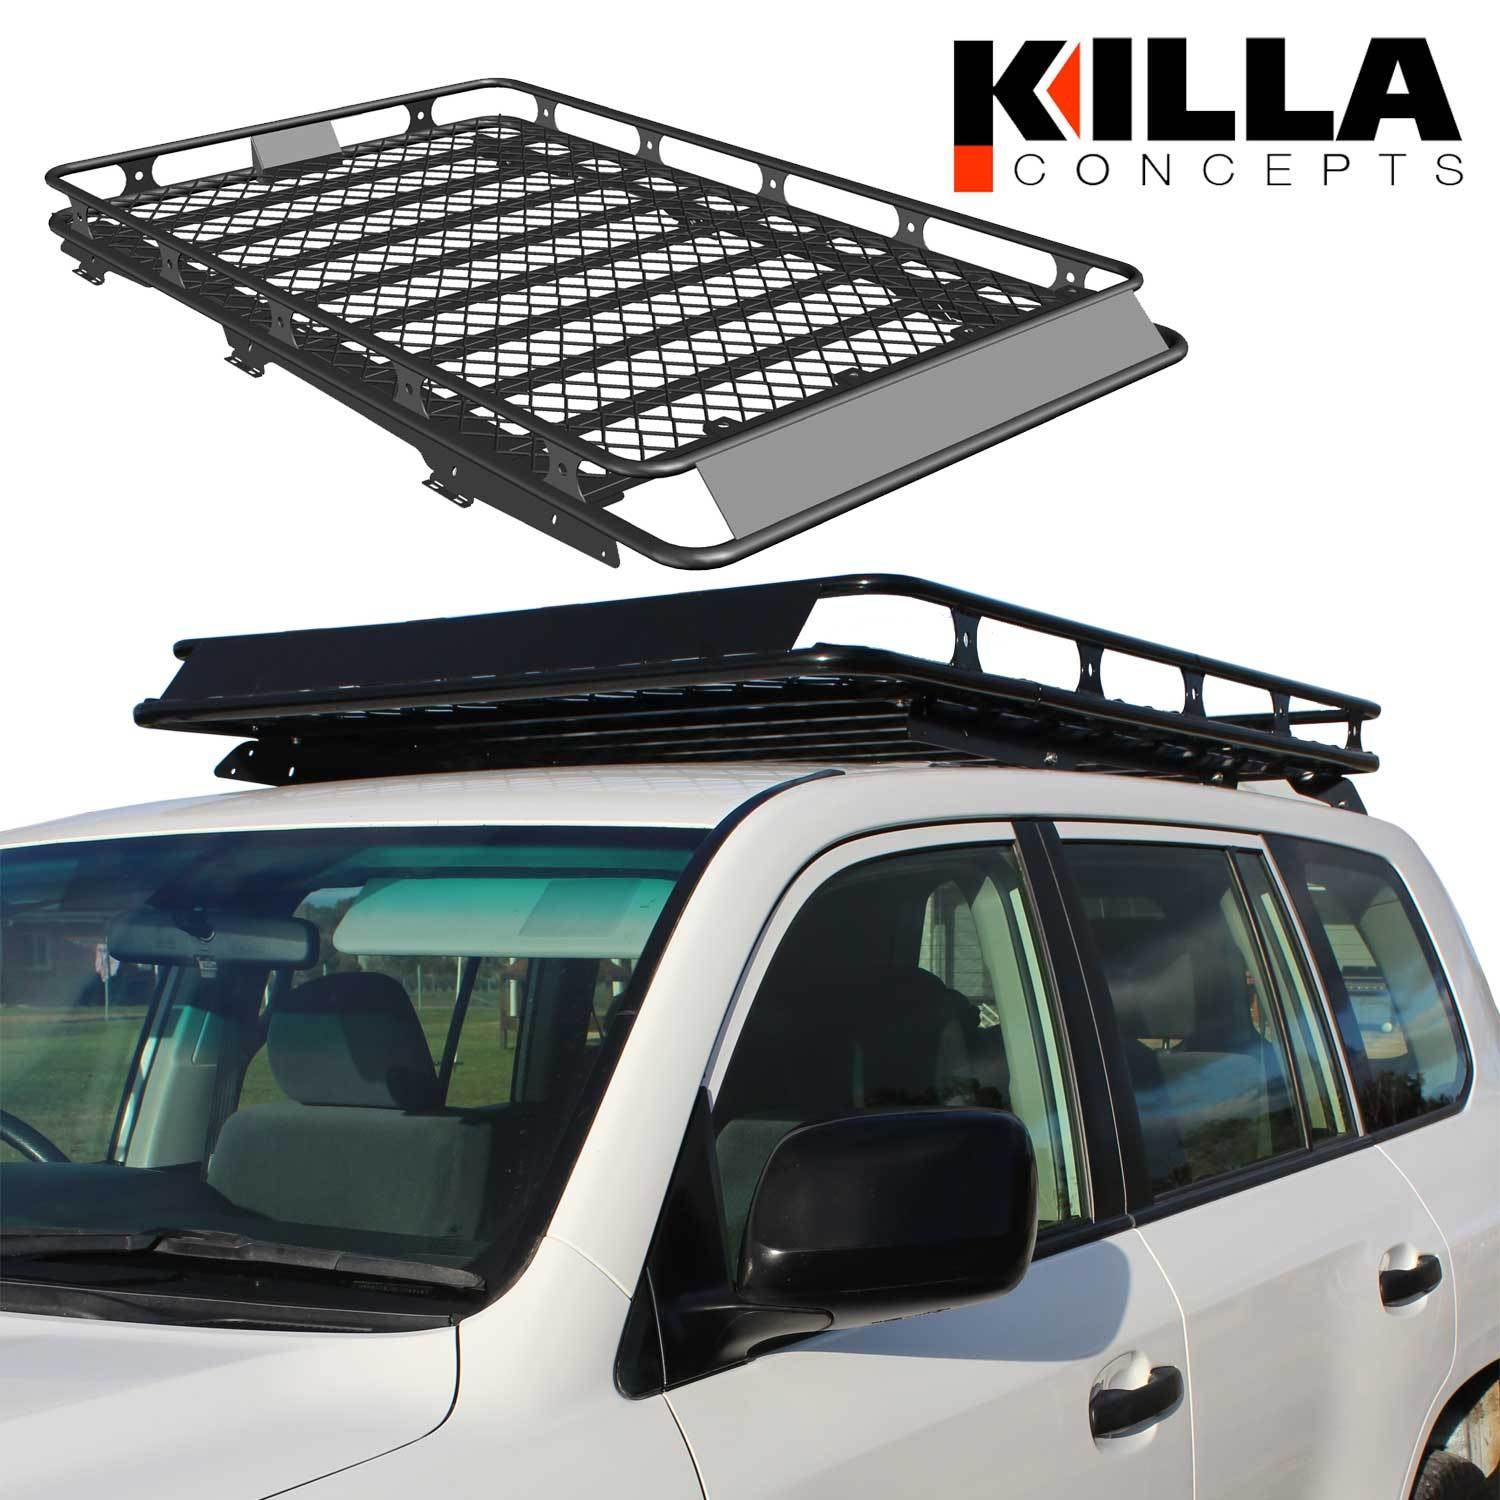 Roof Cage 4x4 Amp Roof Racks